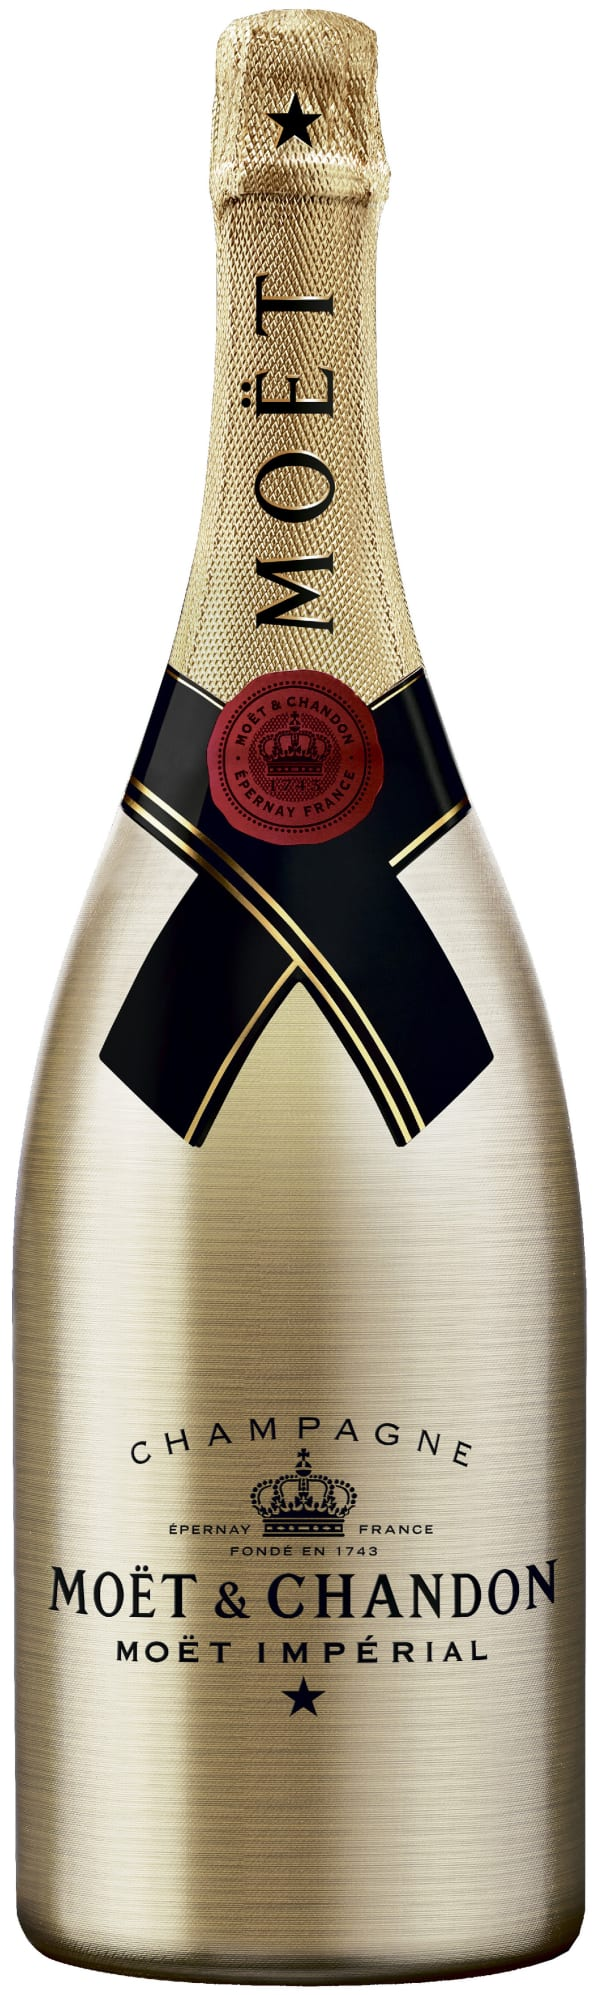 Moët & Chandon Imperial Golden Magnum Champagne Brut